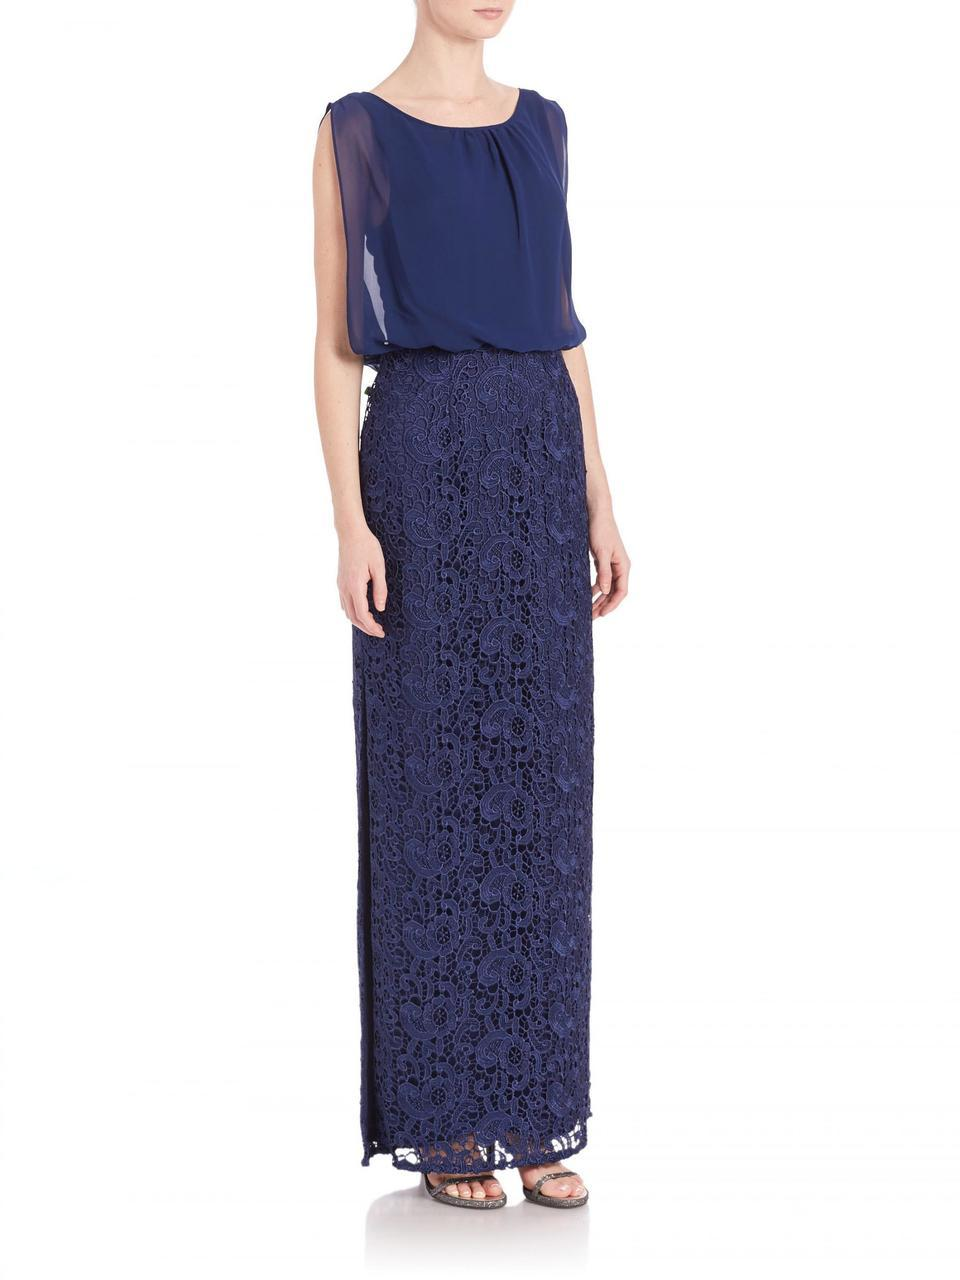 Aidan Mattox - Sleeveless Lace Long Dress 251704760 in Blue